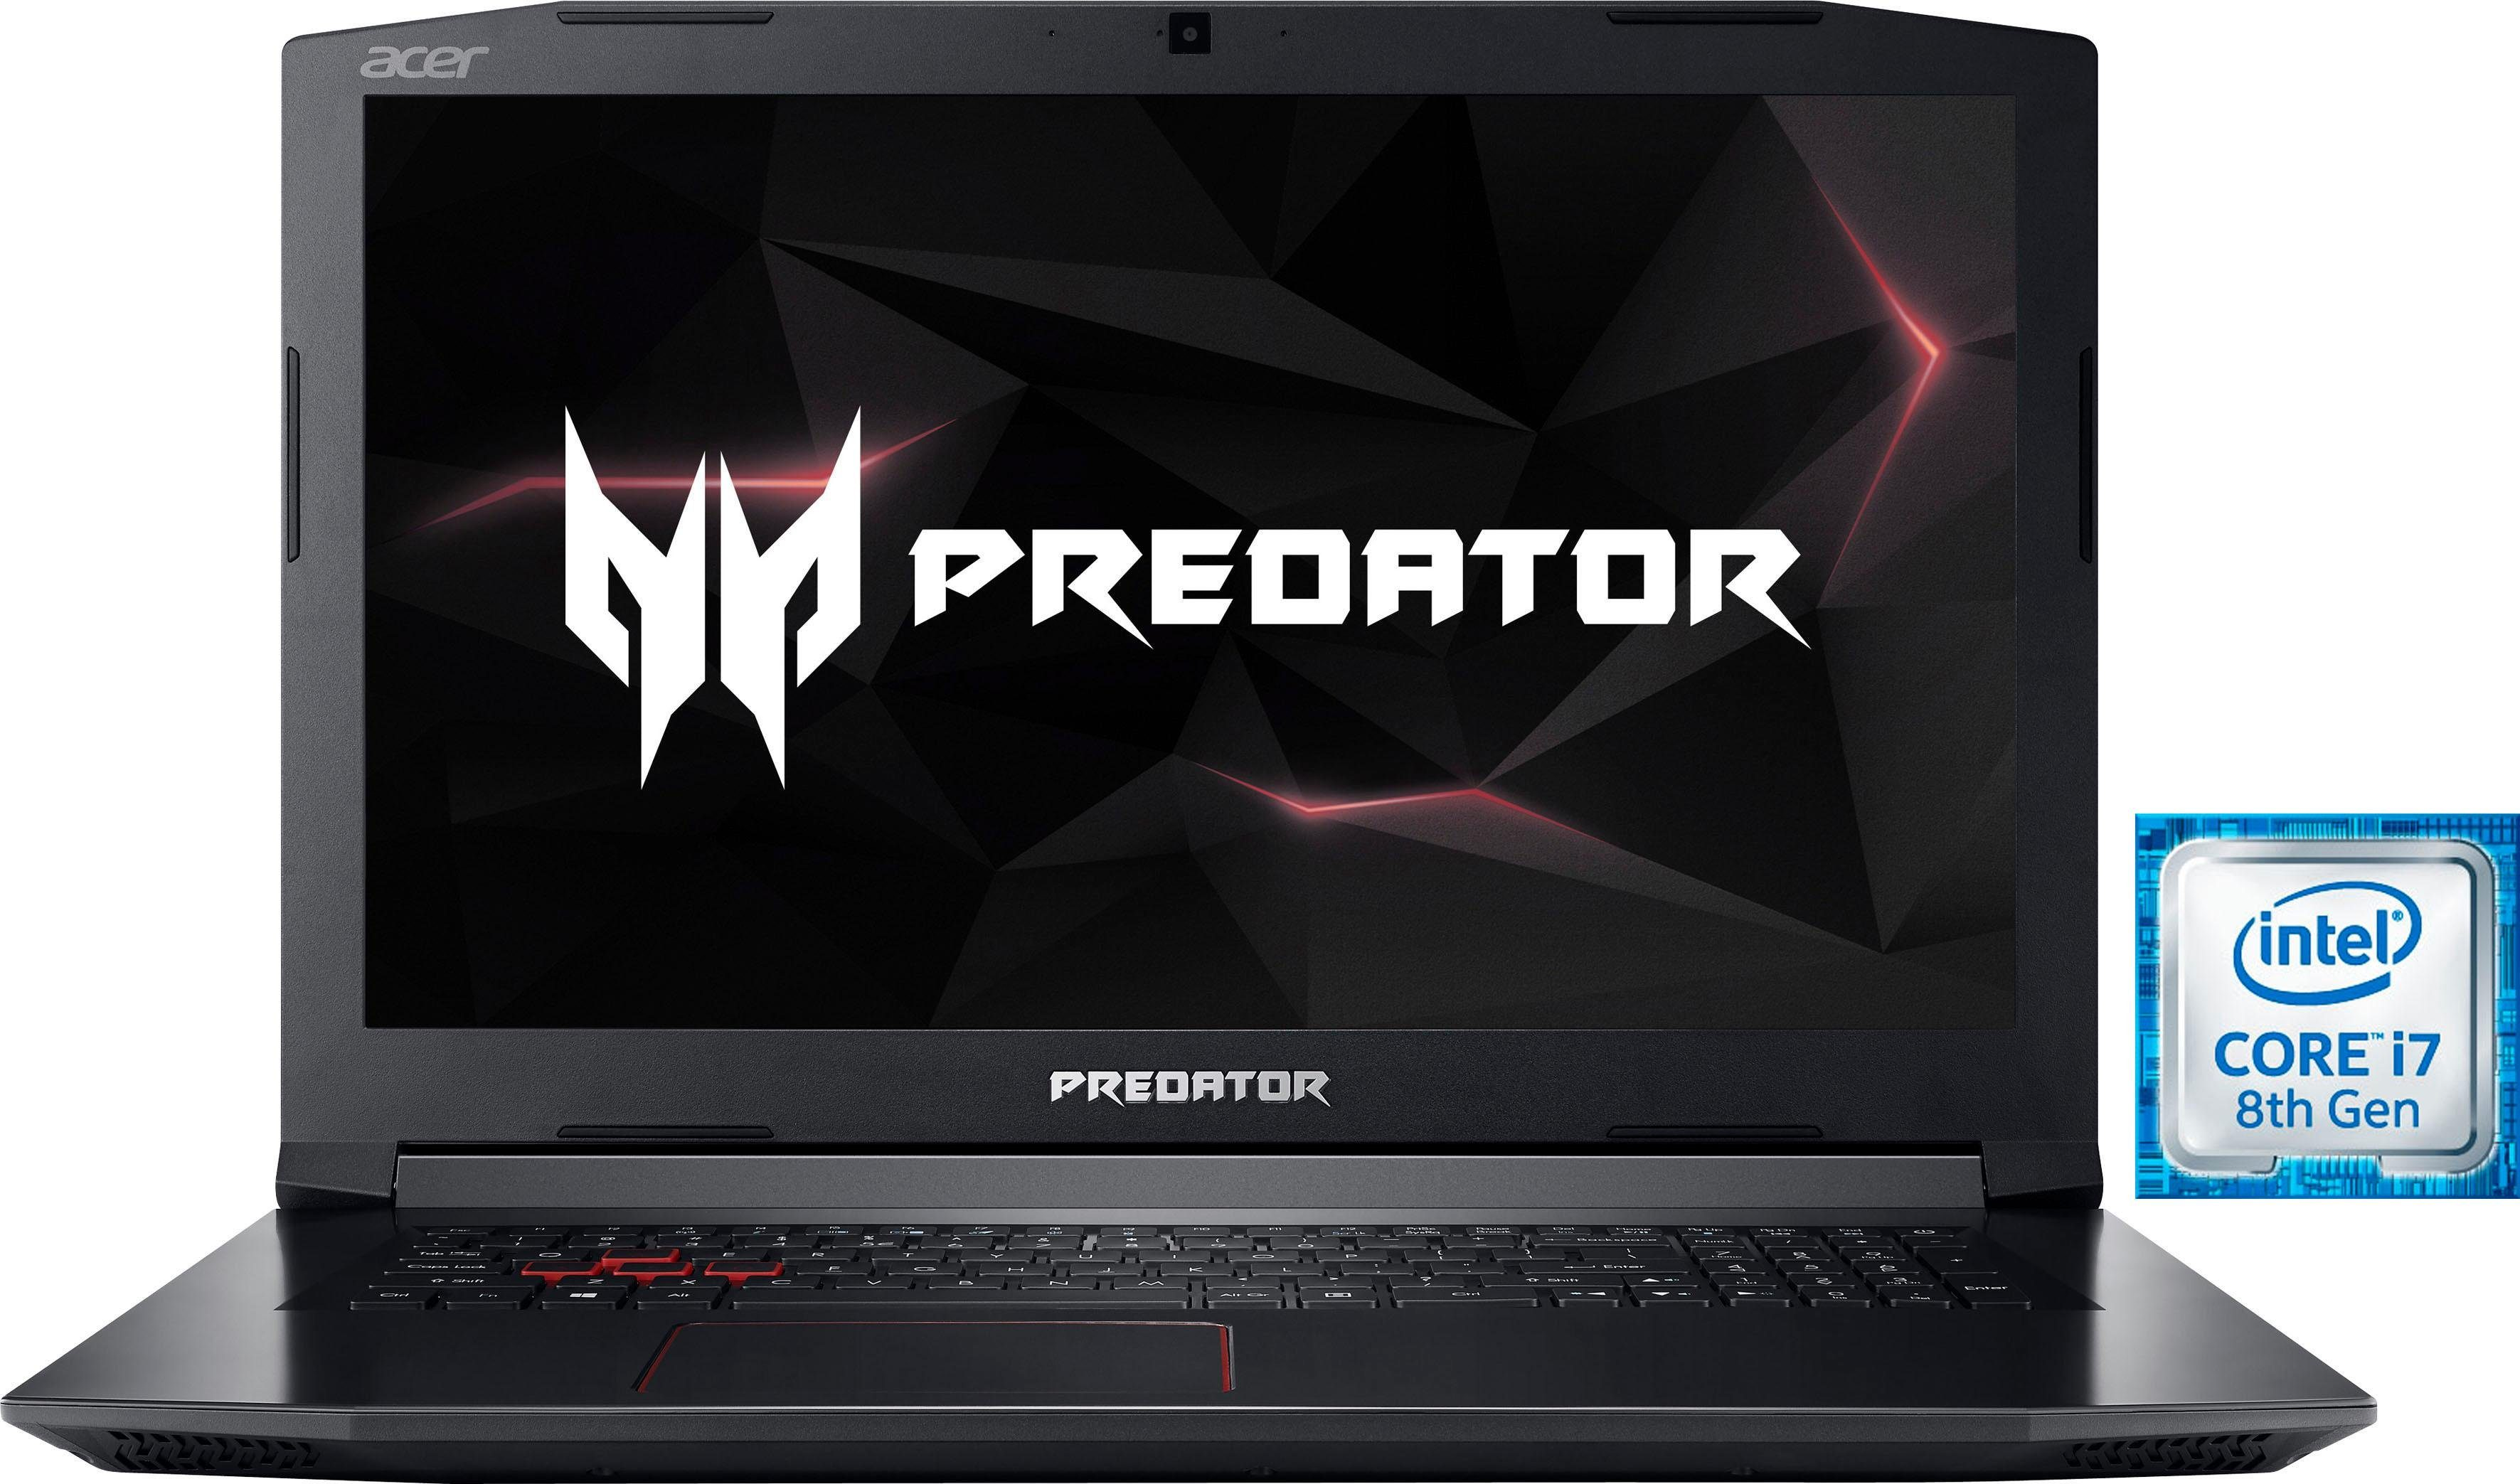 Acer Predator Helios 300 (PH317-52-75L8) Gaming-Notebook (43,9 cm/17,3 Zoll, Intel Core i7, GeForce, 1000 GB HDD, 256 GB SSD)